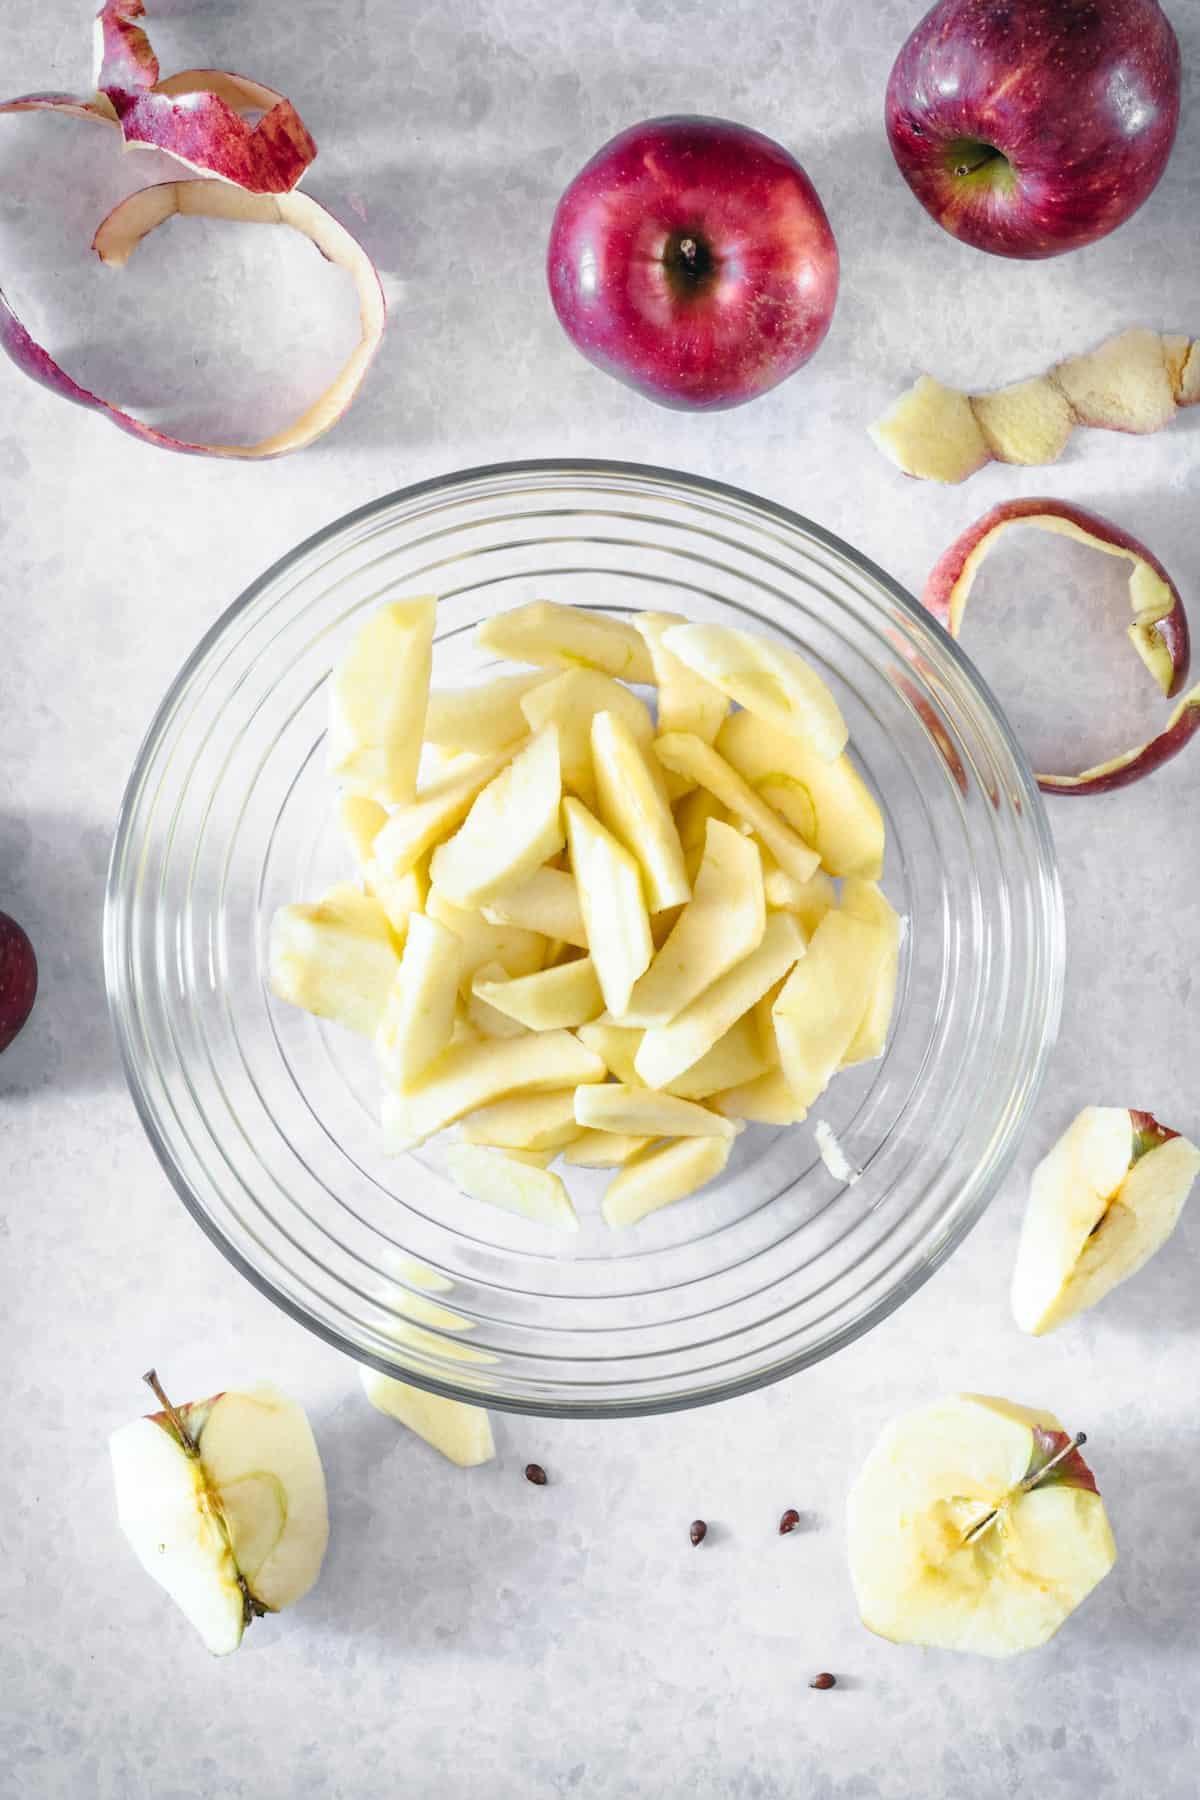 Apple slices in a glass serving dish